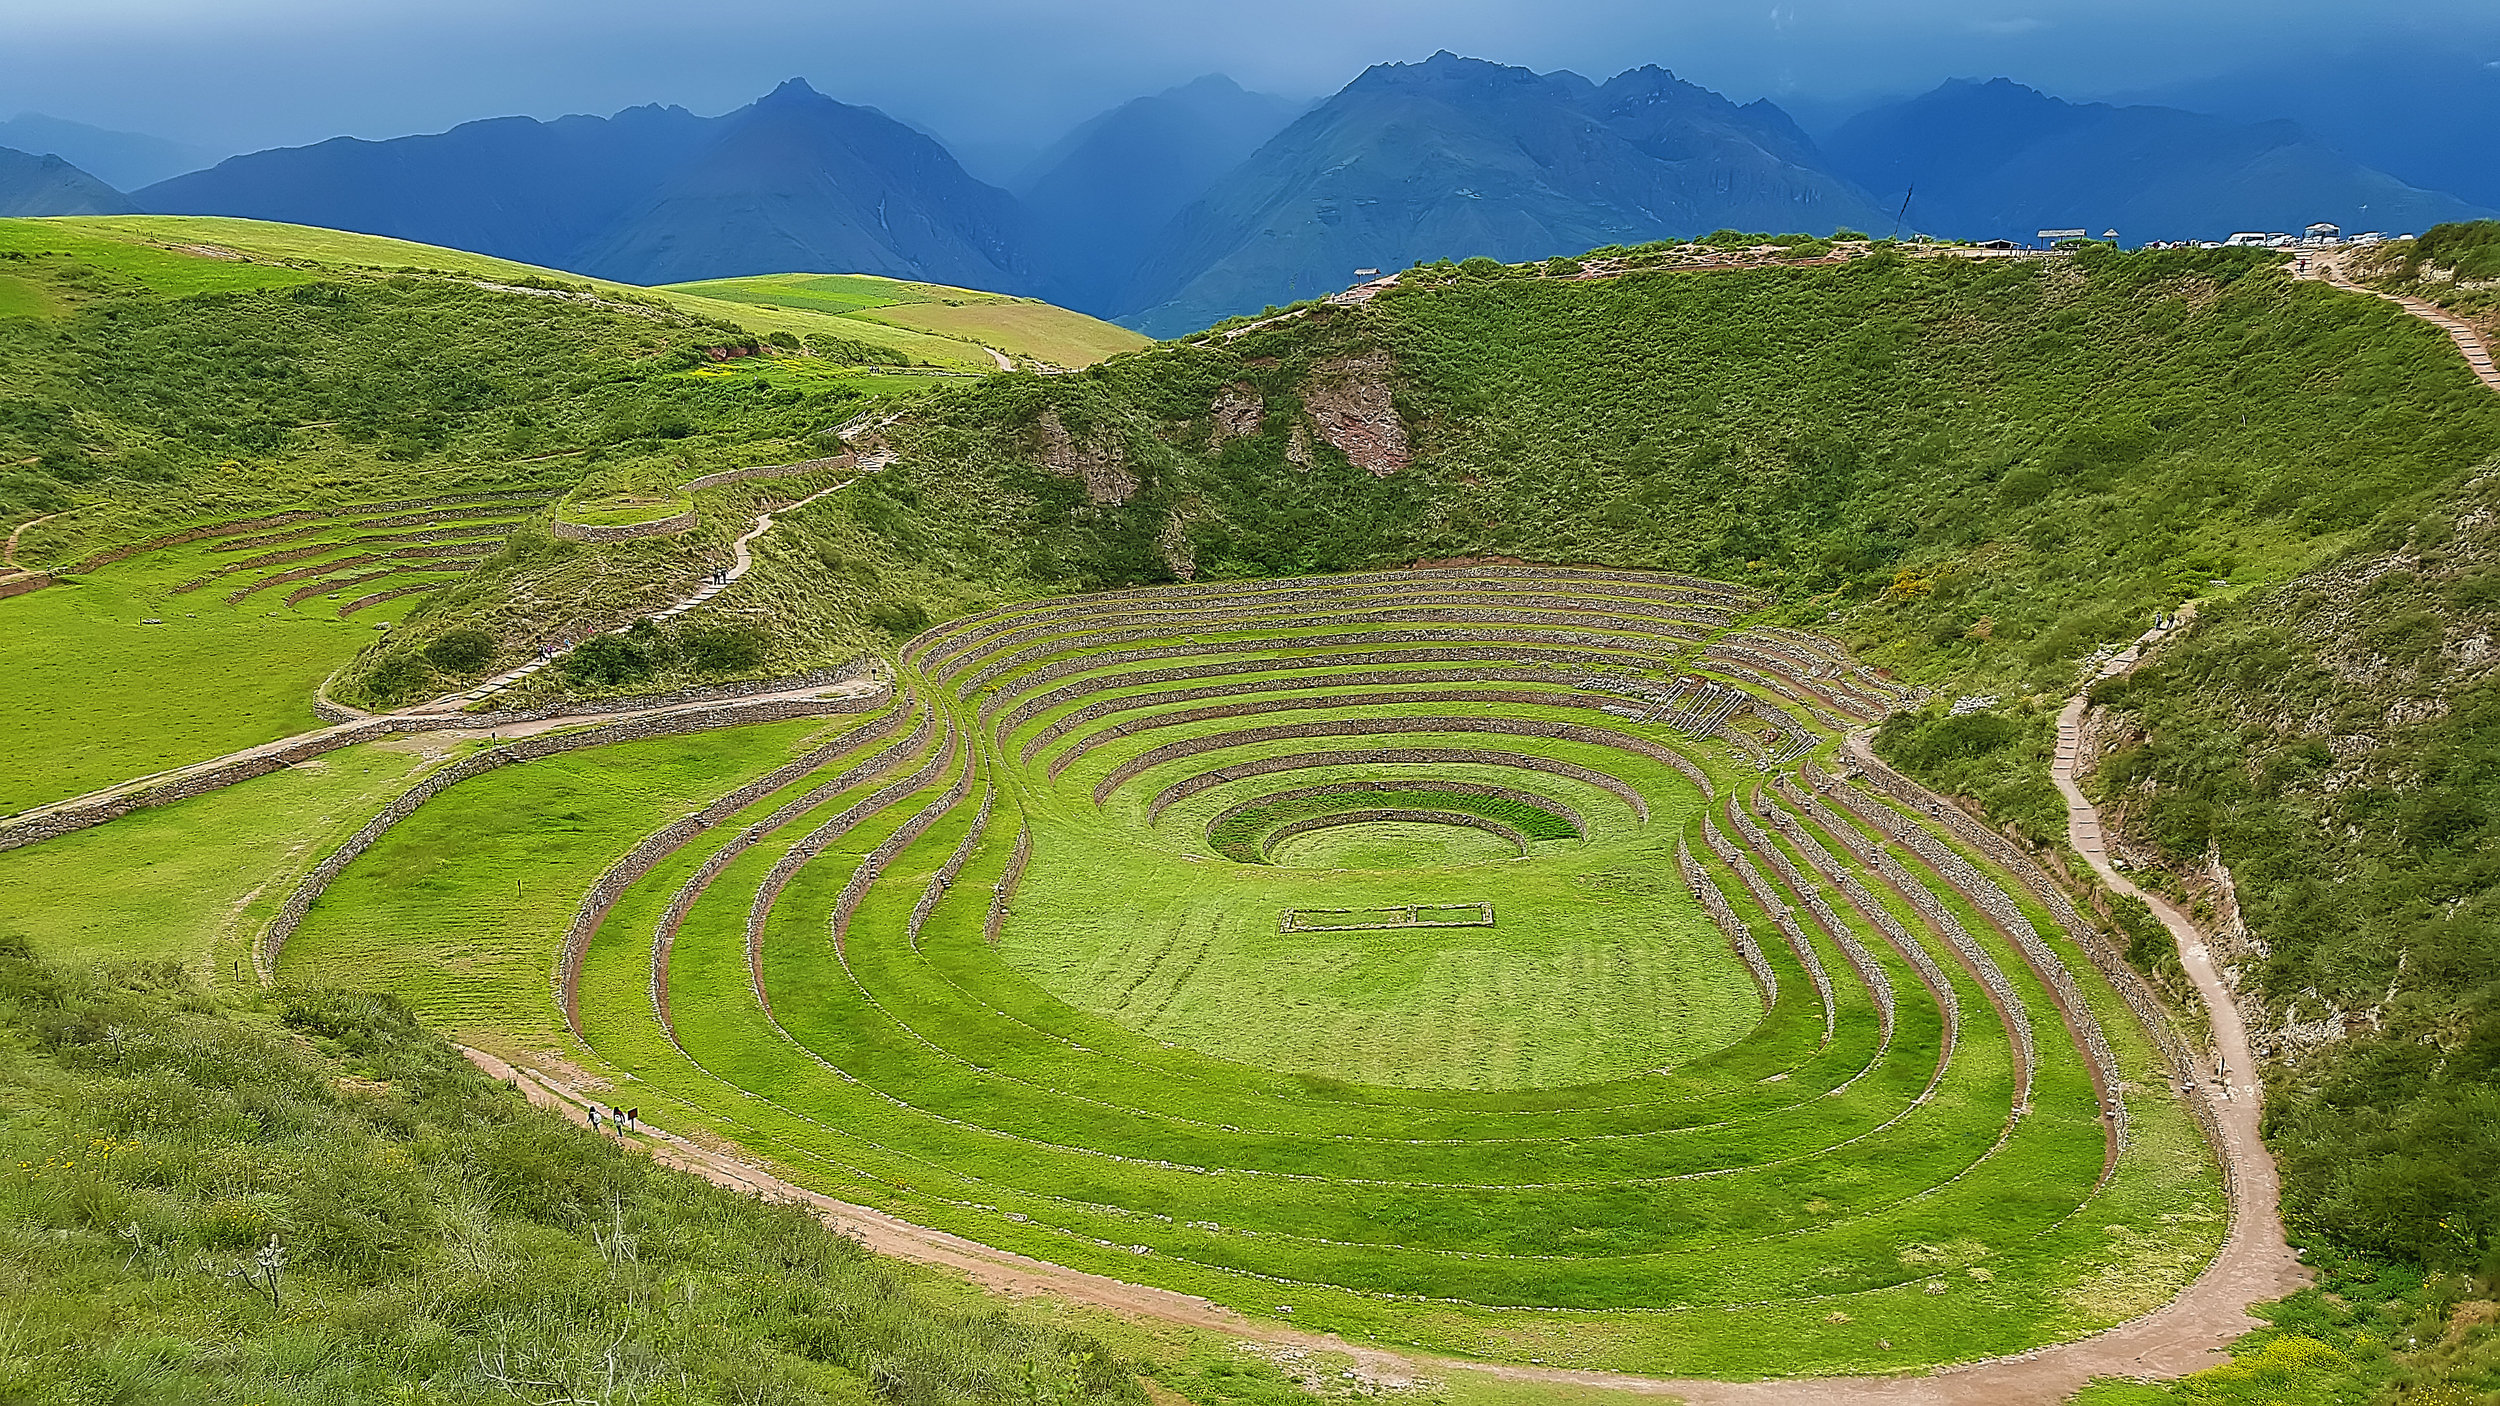 Moray (Incan ruin) in Peru; photo by Jenine Schirtzer, March 2016.